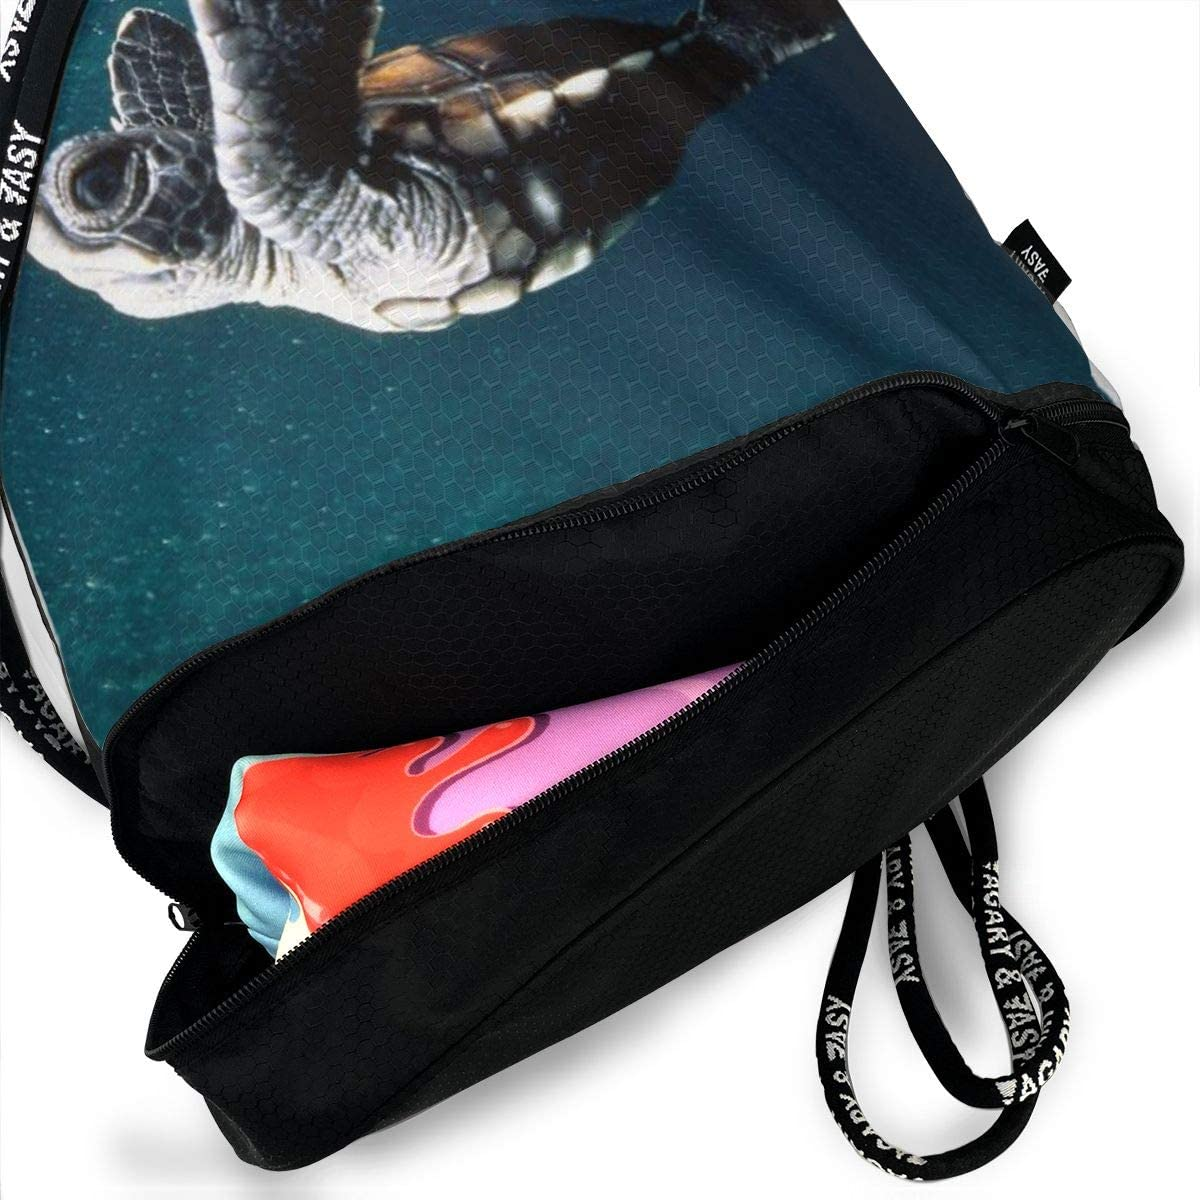 GymSack Drawstring Bag Sackpack Sea Turtles Sport Cinch Pack Simple Bundle Pocke Backpack For Men Women